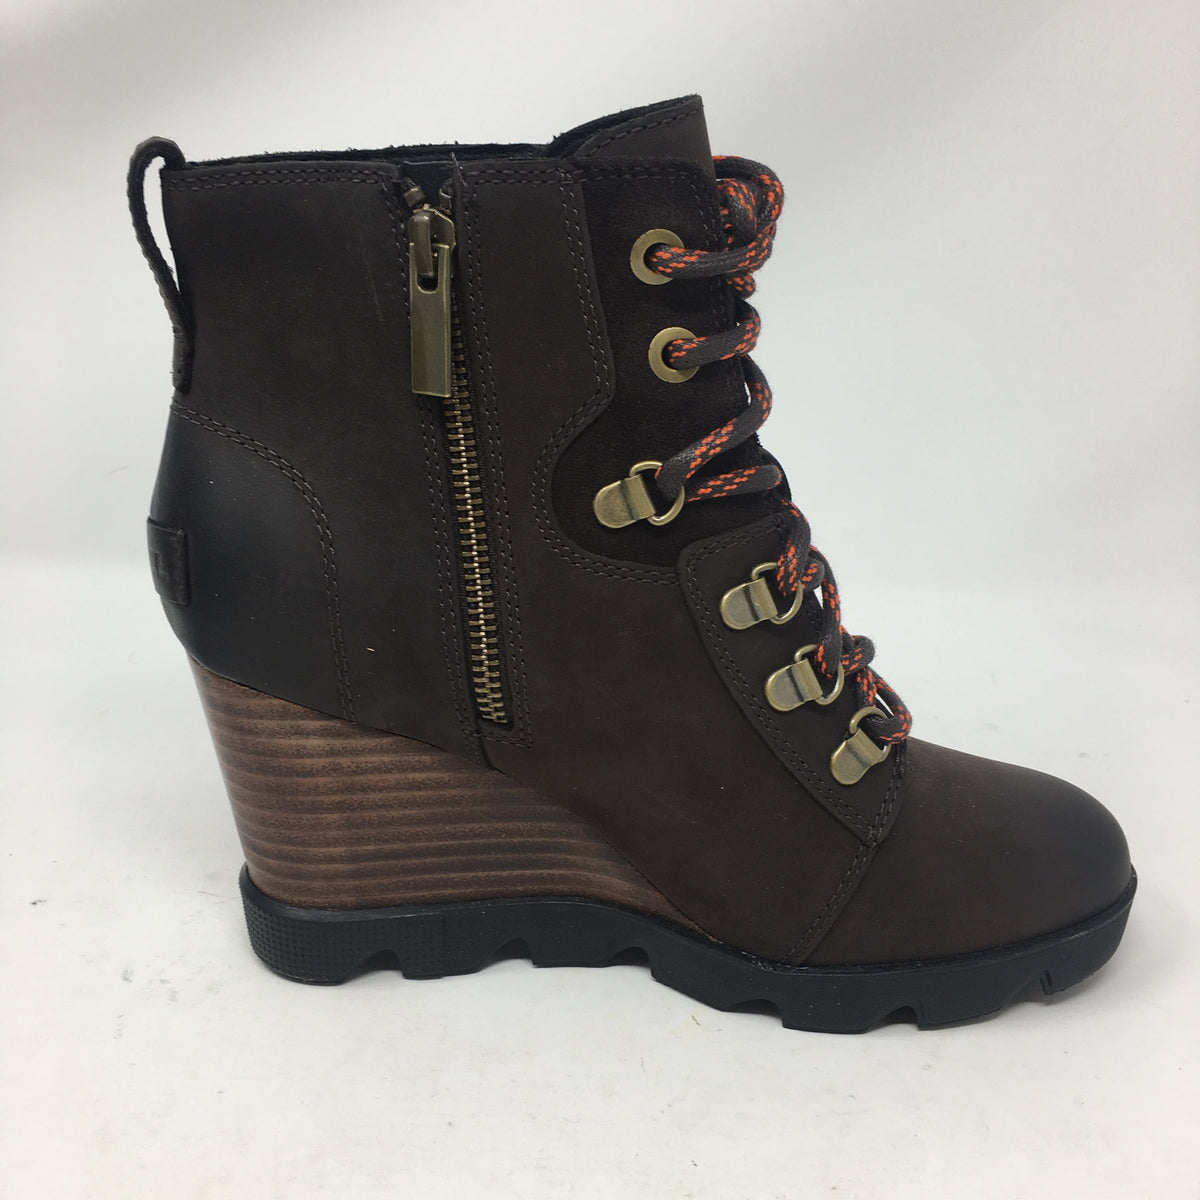 Sorel Joan Uptown Lace Blackened Brown Bootie